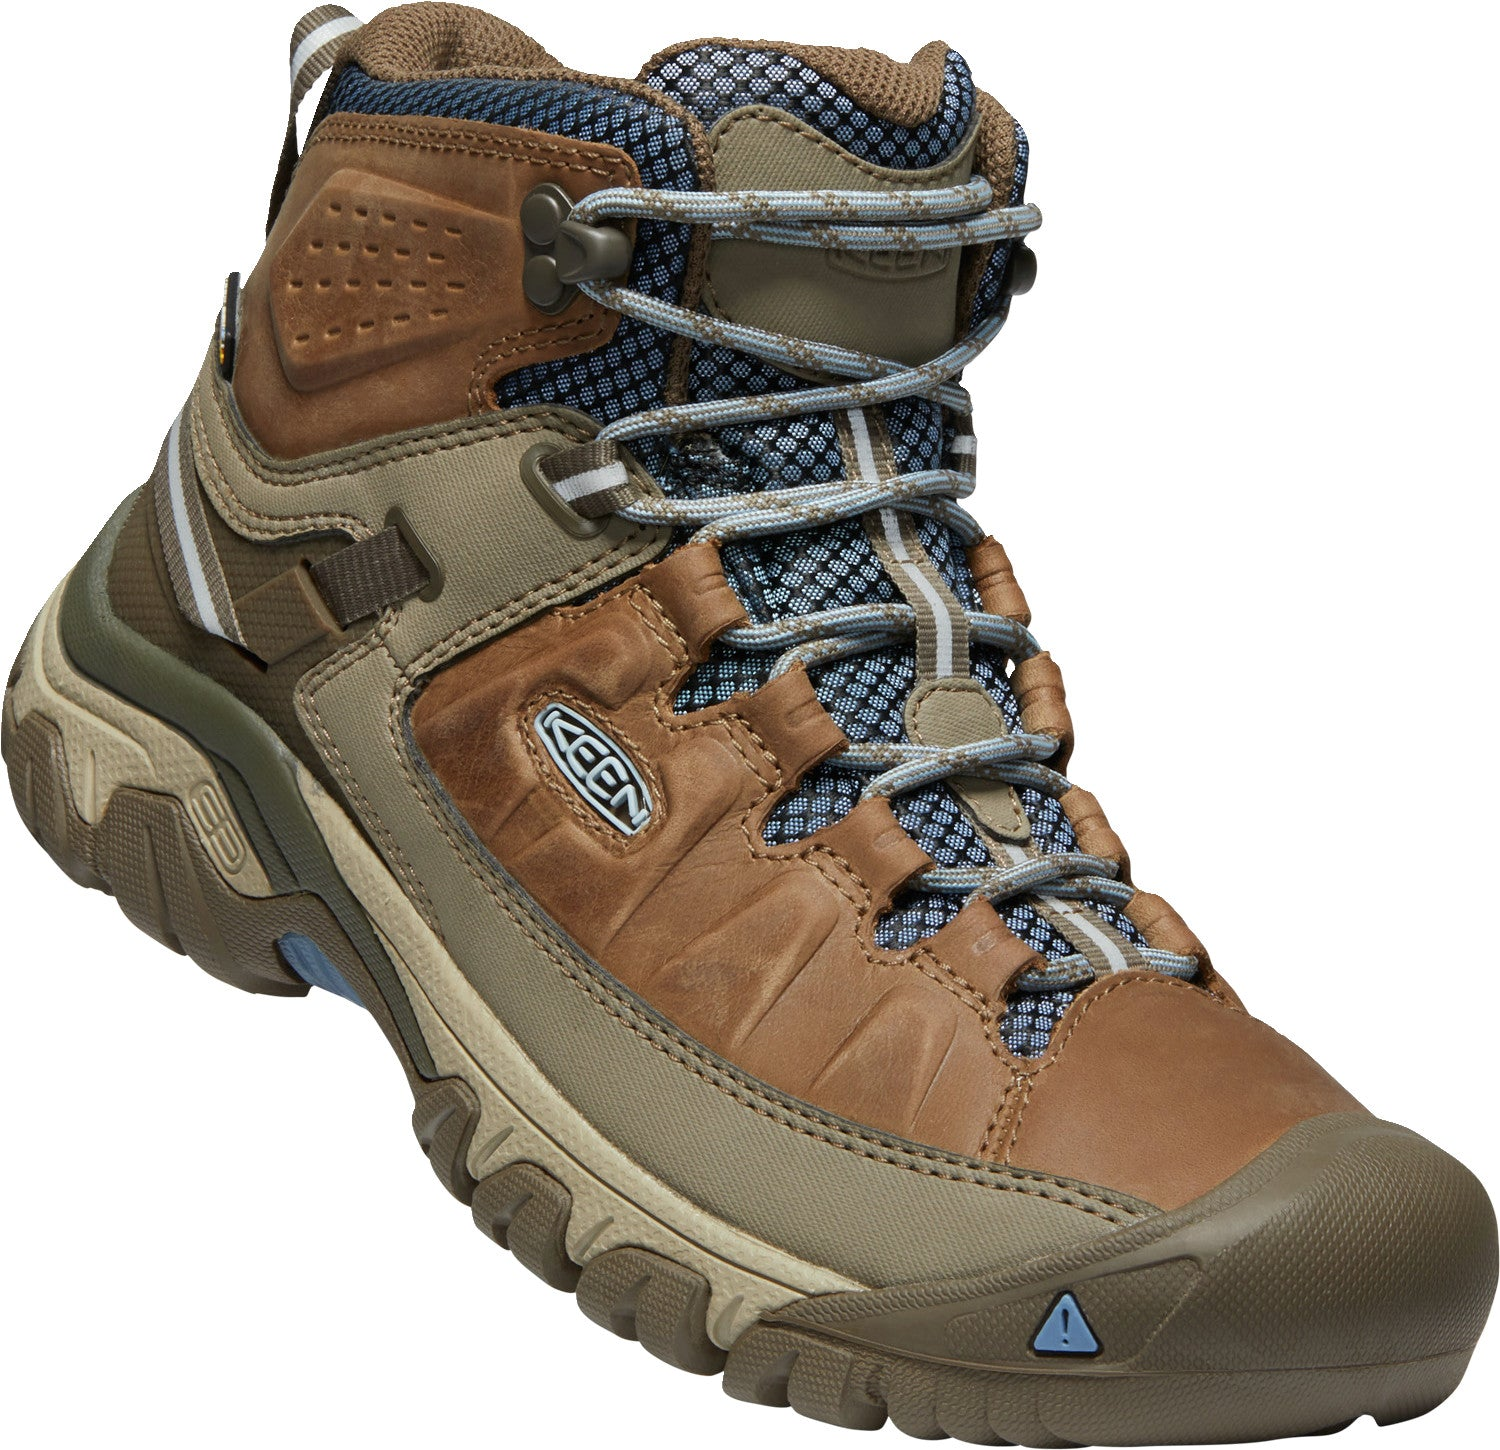 Keen Women's Targhee III Mid Hiking Boot - Gear For Adventure